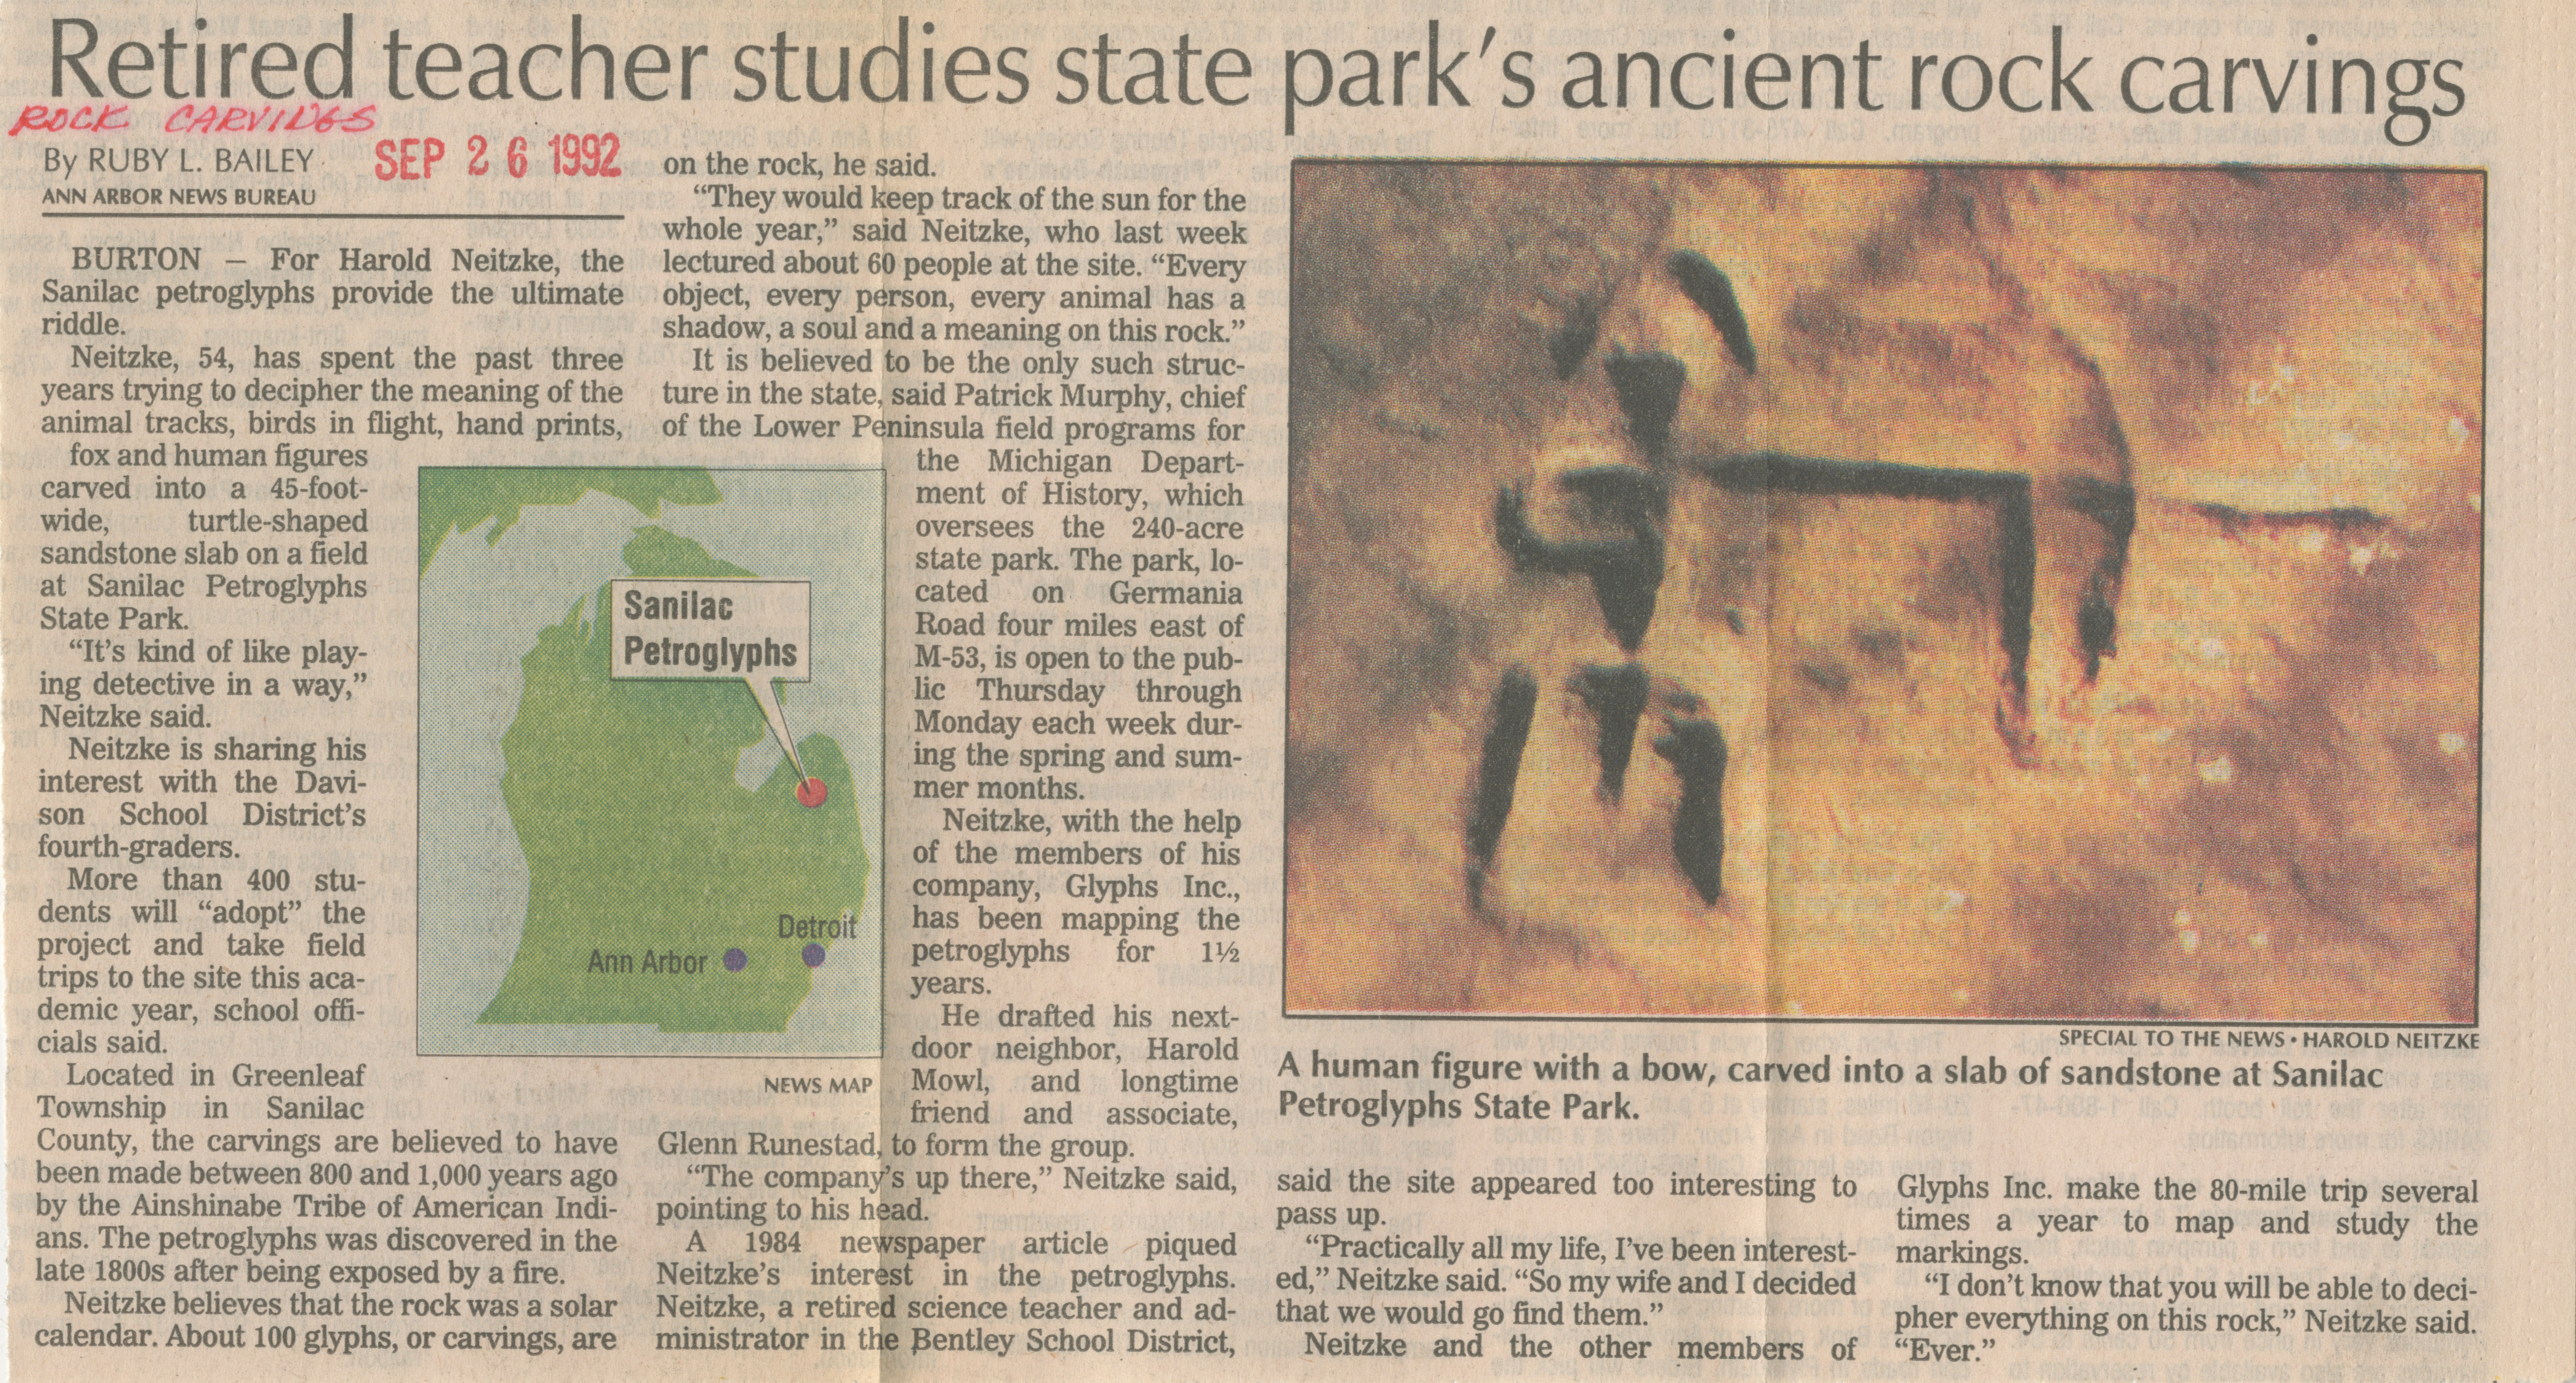 Retired Teacher Studies State Park's Ancient Rock Carvings  image